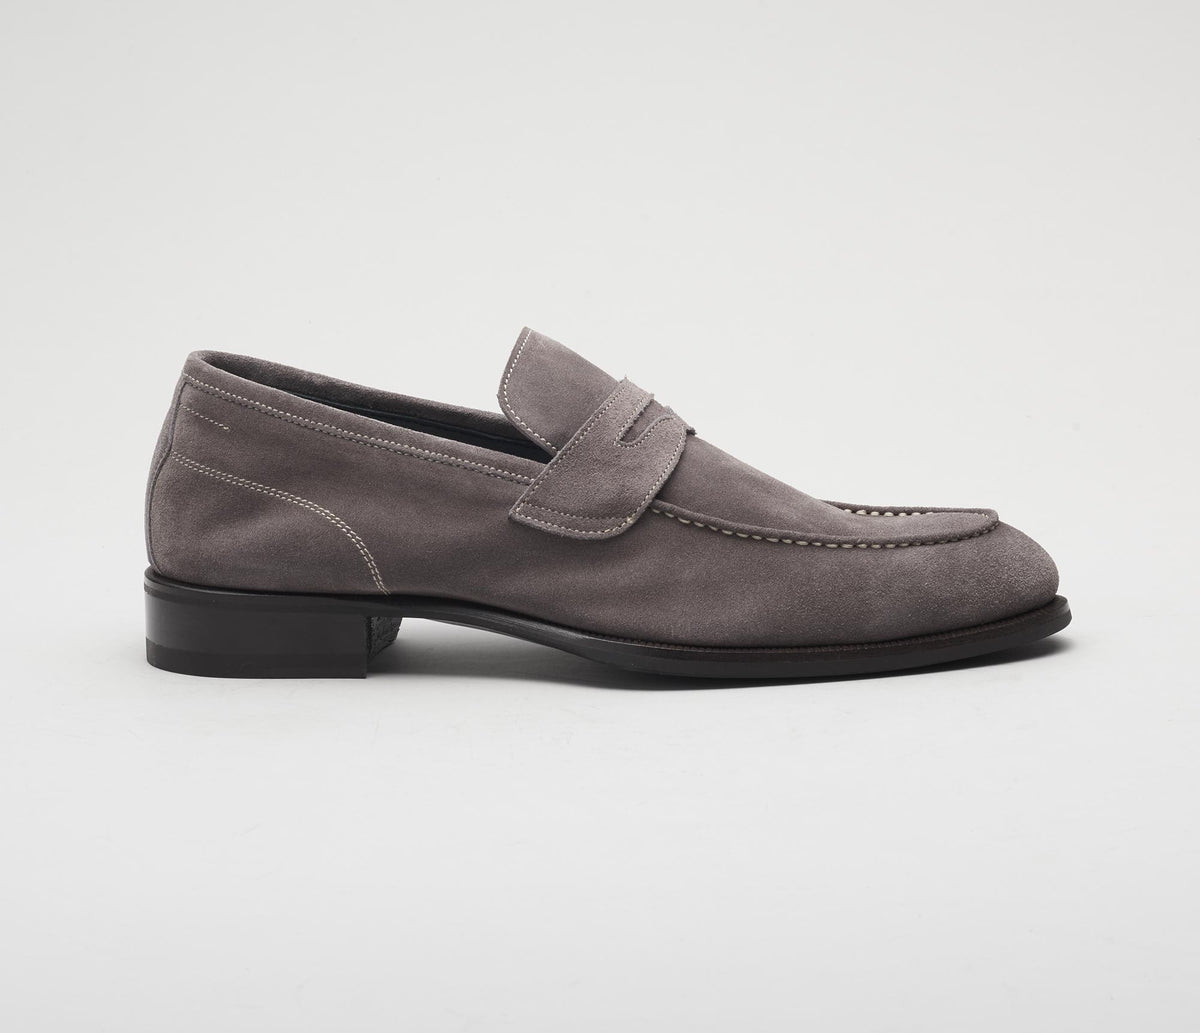 The Brera Peltro Men's Suede Loafers